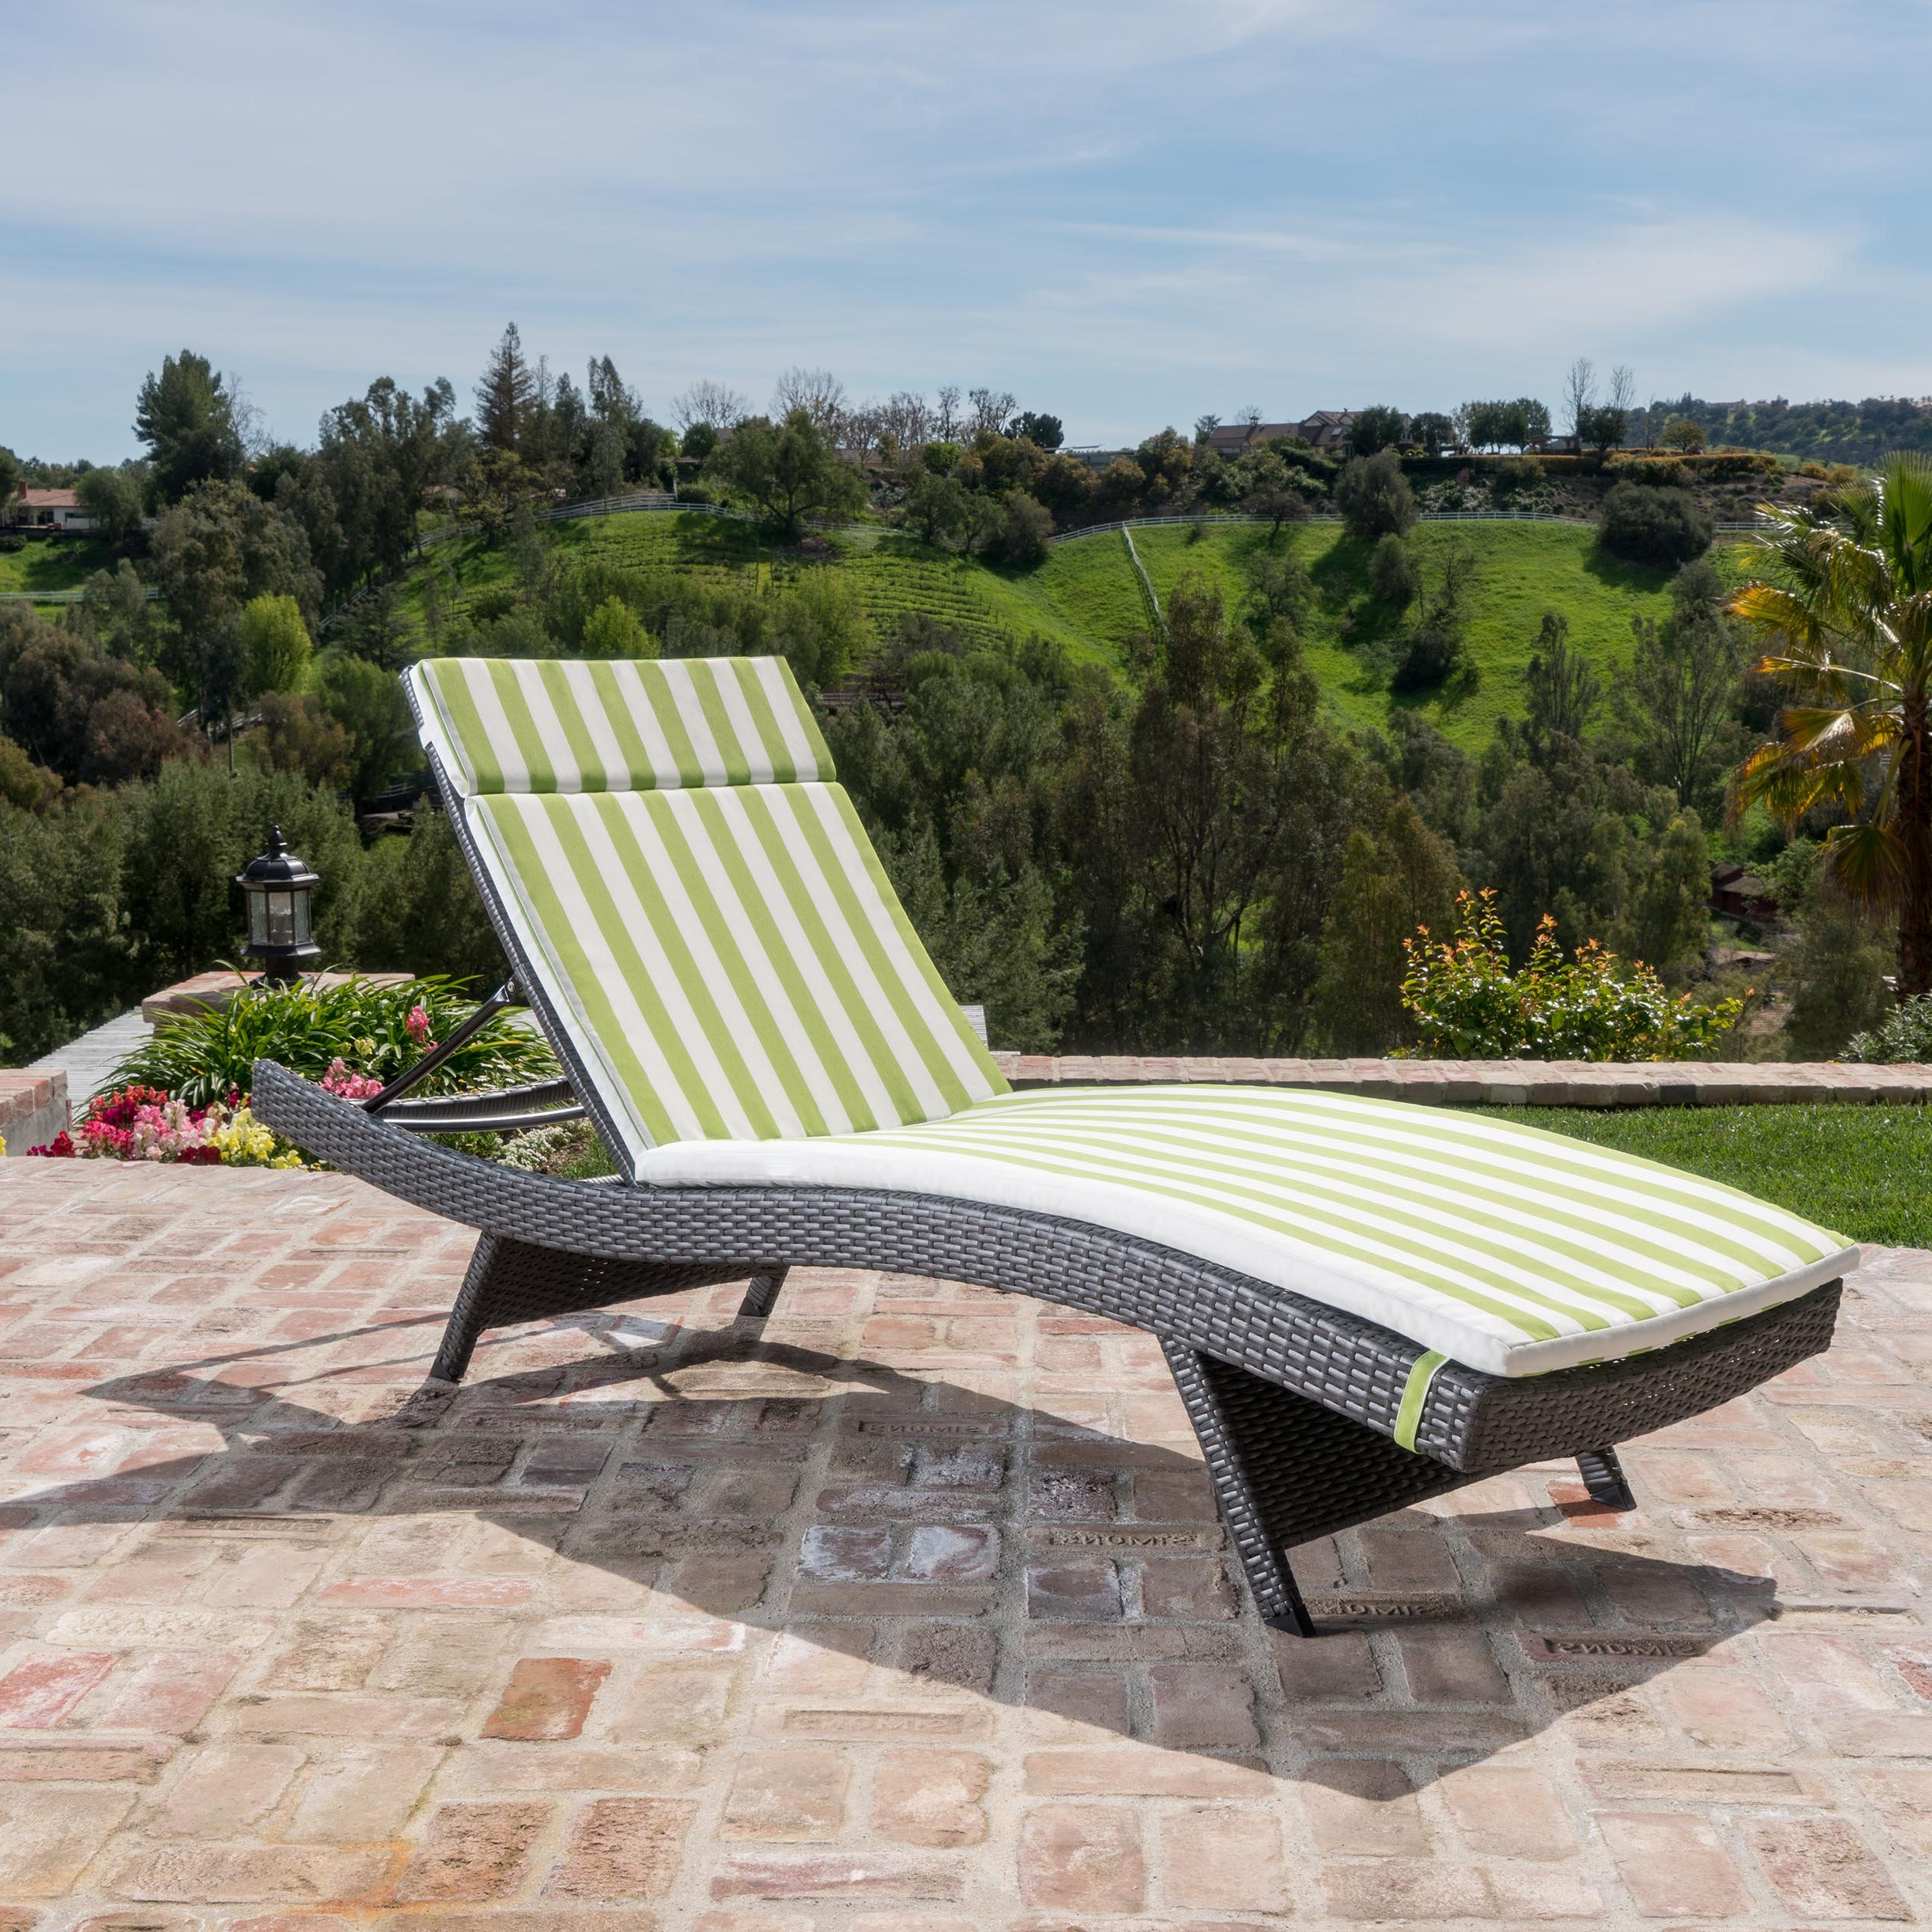 Rebello Wicker Chaise Lounge With Cushion Intended For Favorite White Wicker Adjustable Chaise Loungers With Cushions (View 14 of 25)